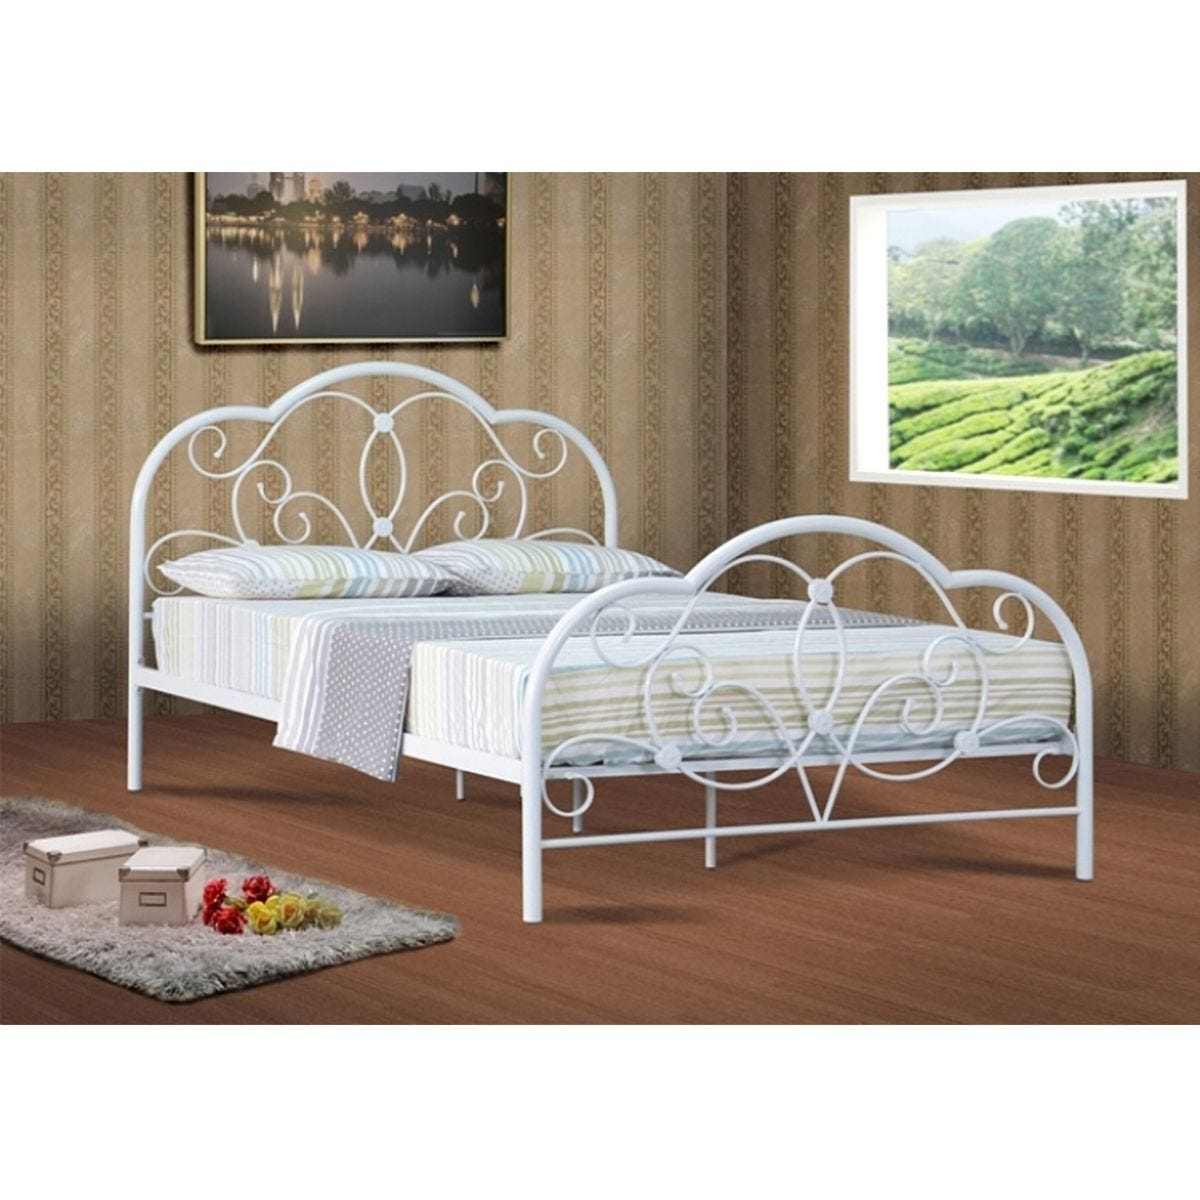 Aurora Small Double Bed Frame - White